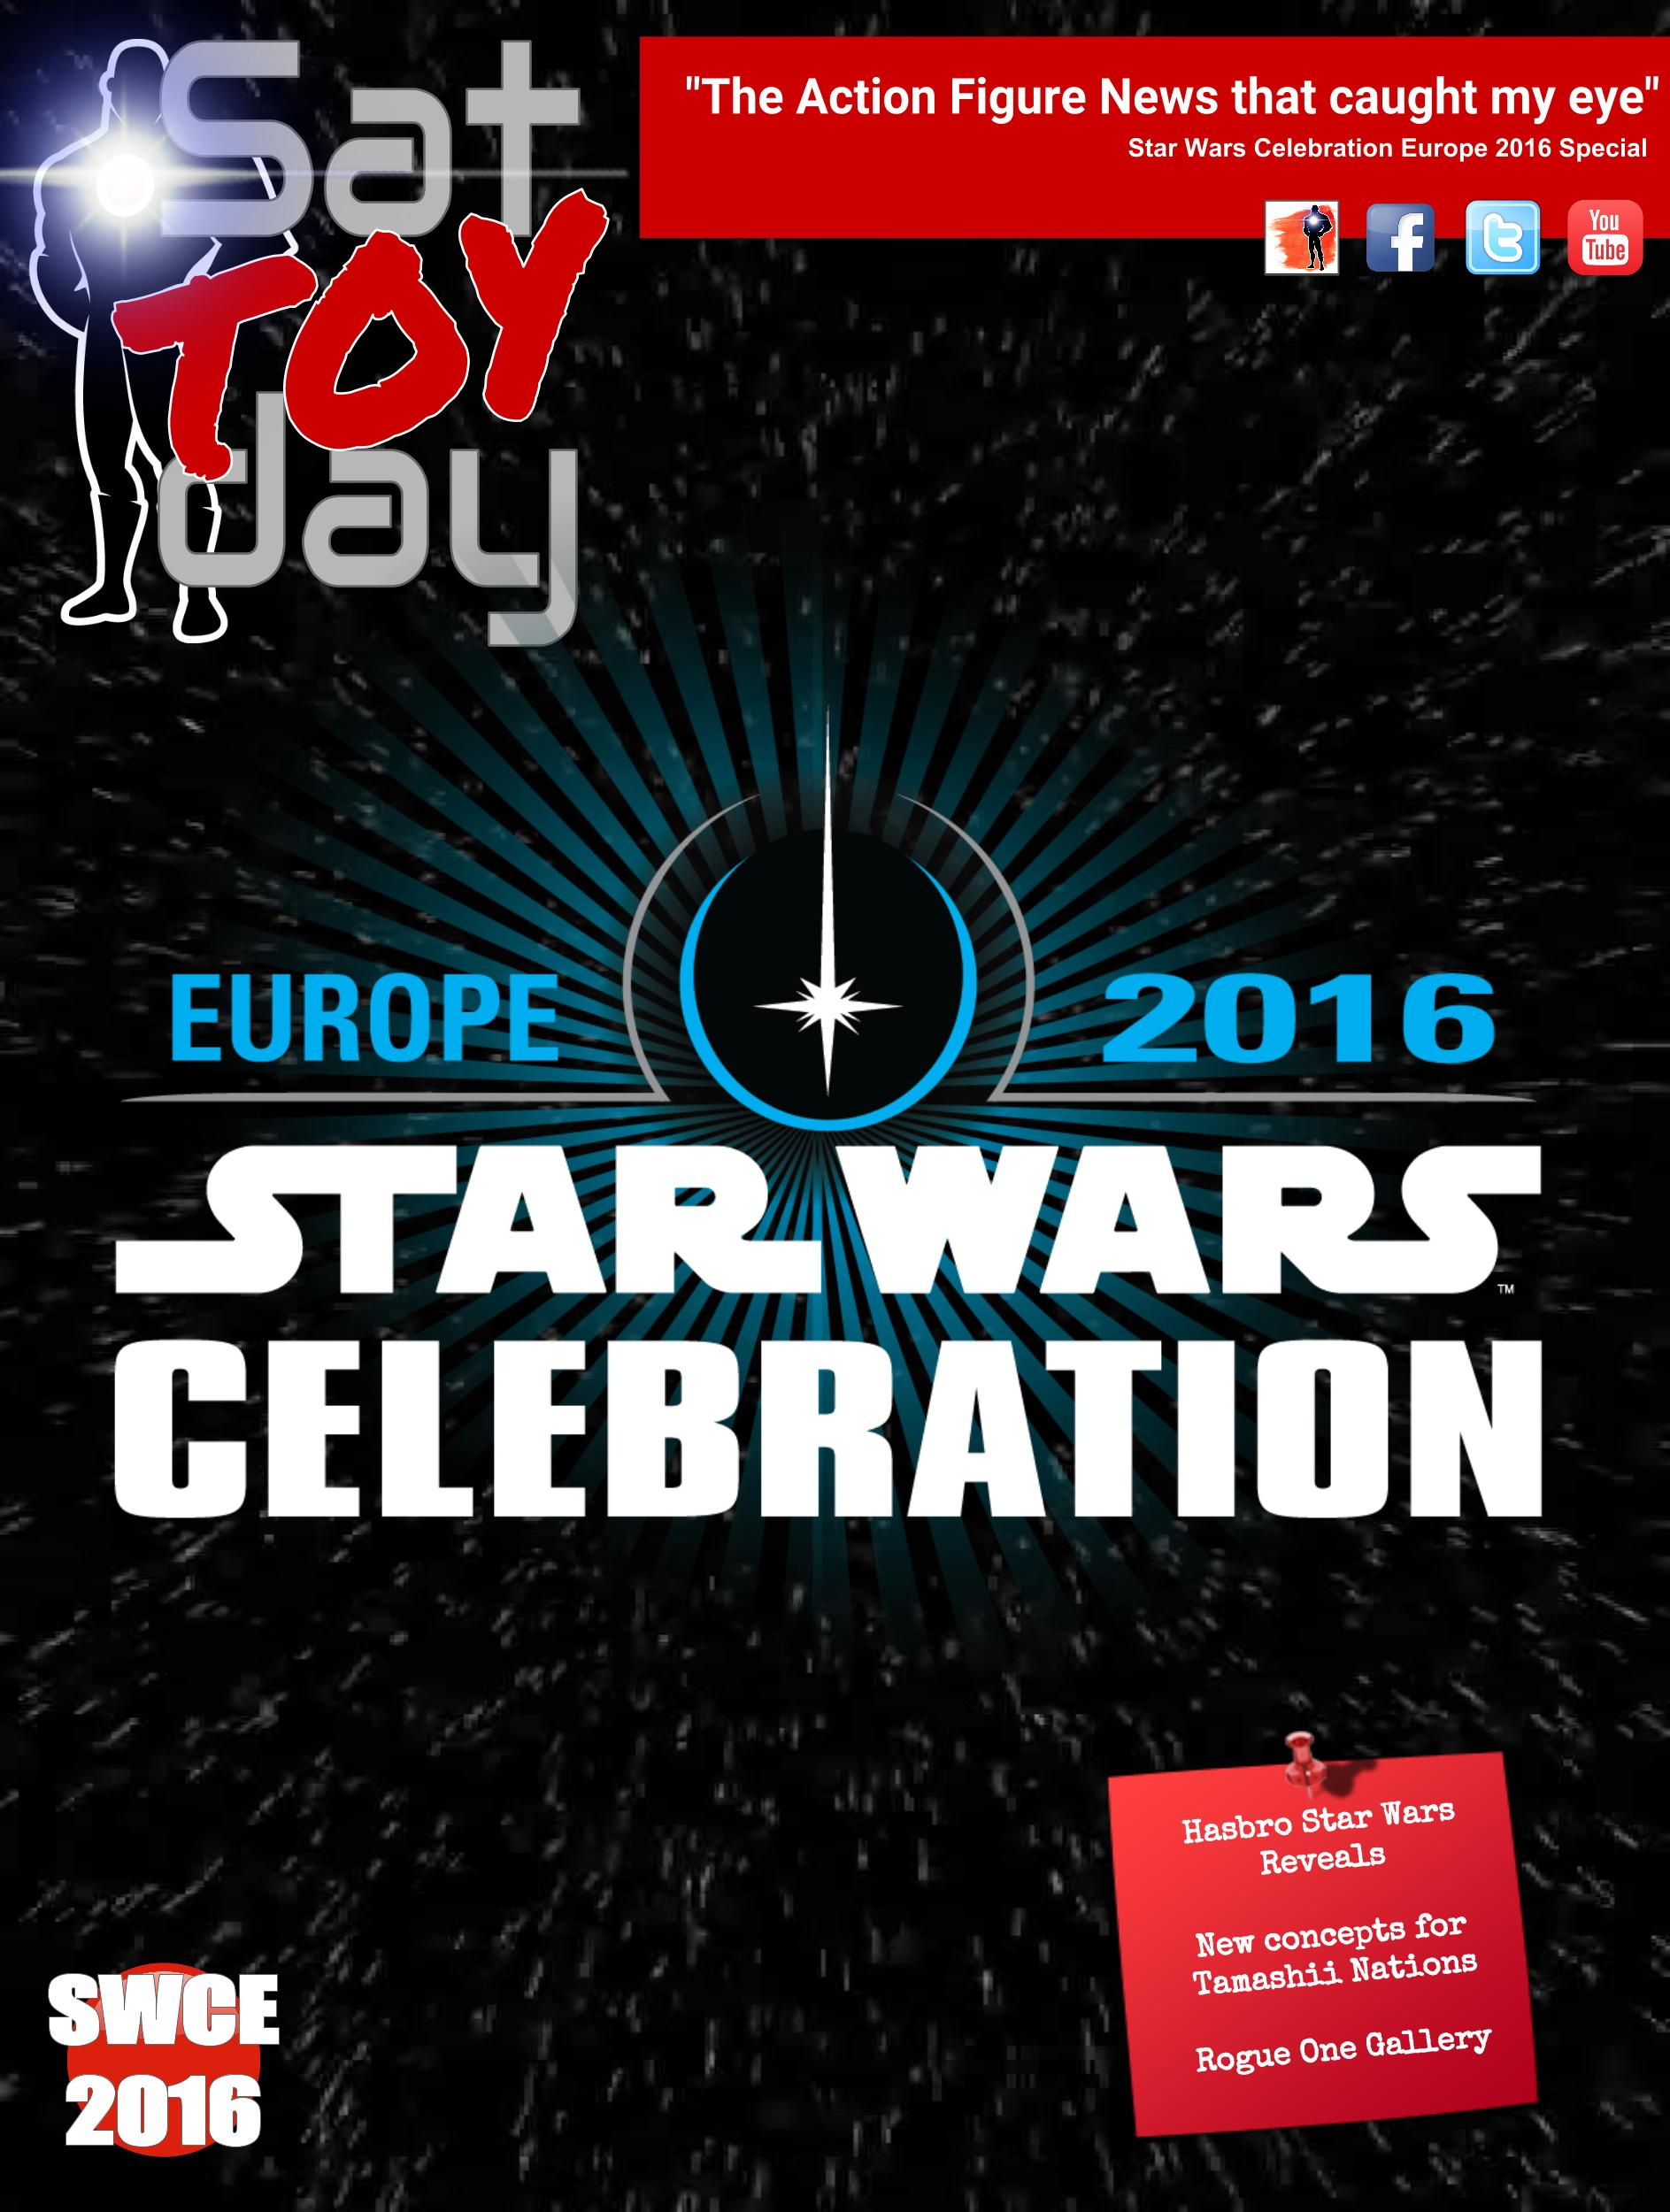 034a Action Figure Sat-TOY-day News, Star Wars Celebration Special